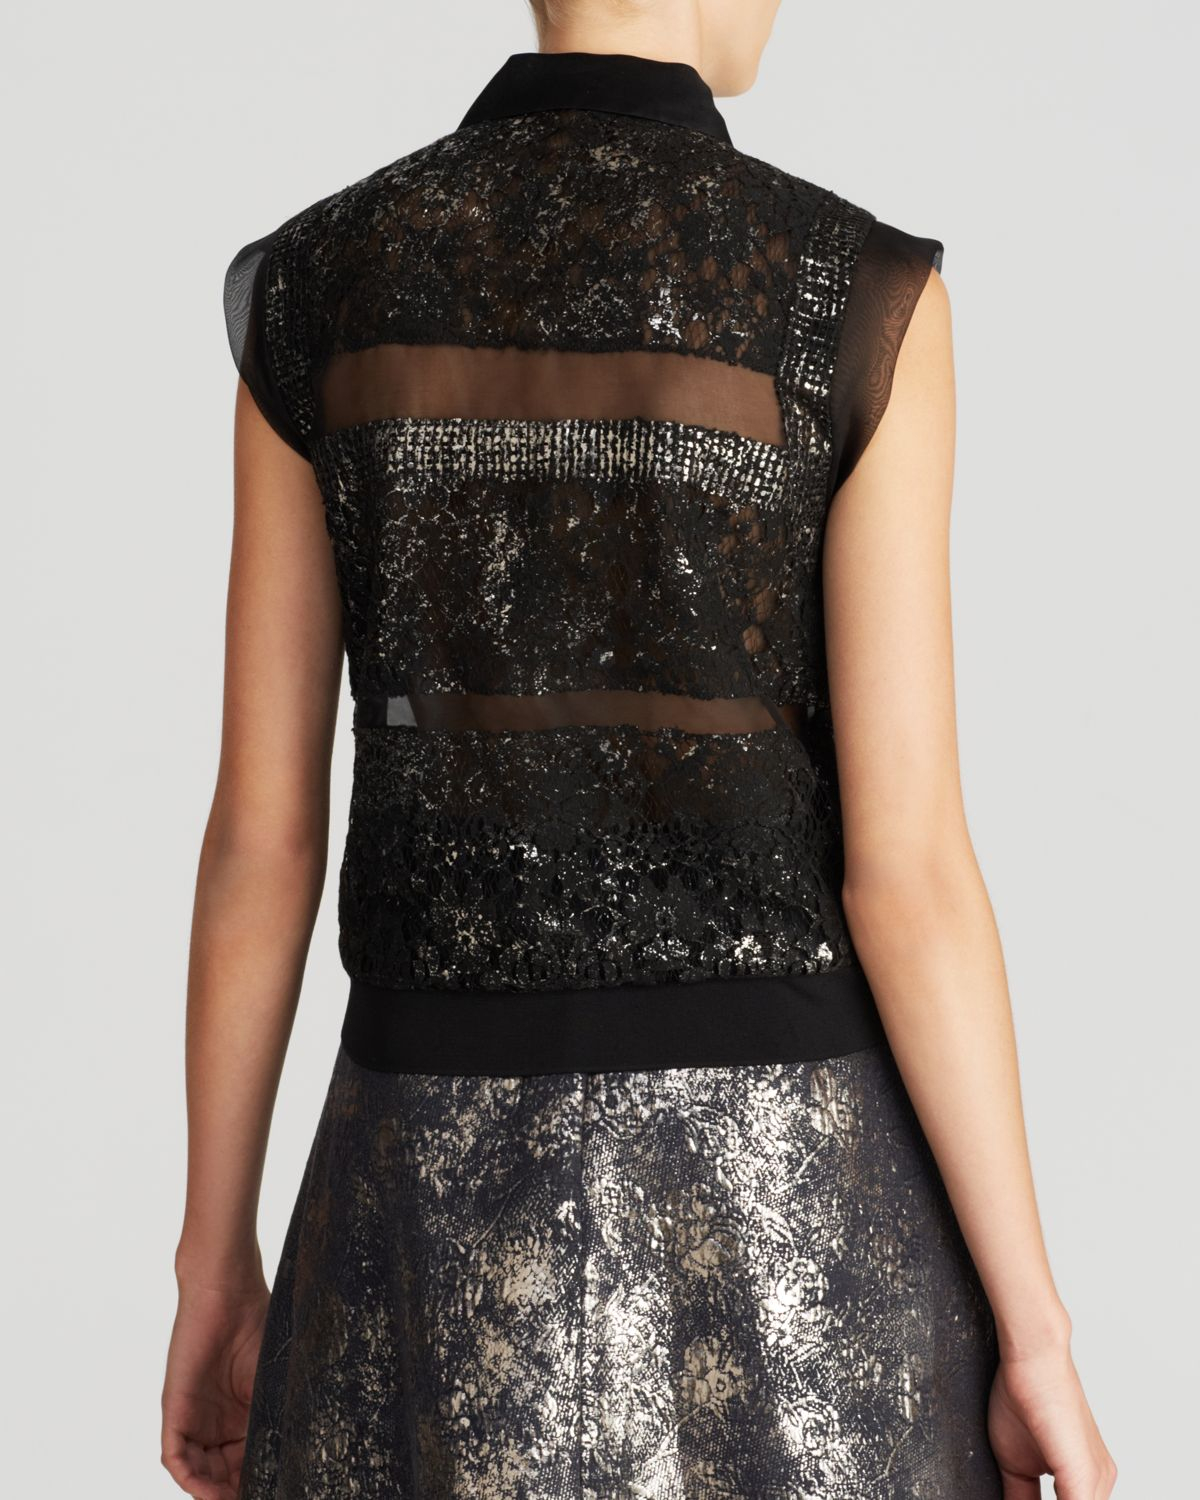 rebecca-taylor-black-top-sleeveless-foil-lace-yardage-printing-hannah-schultz.jpg